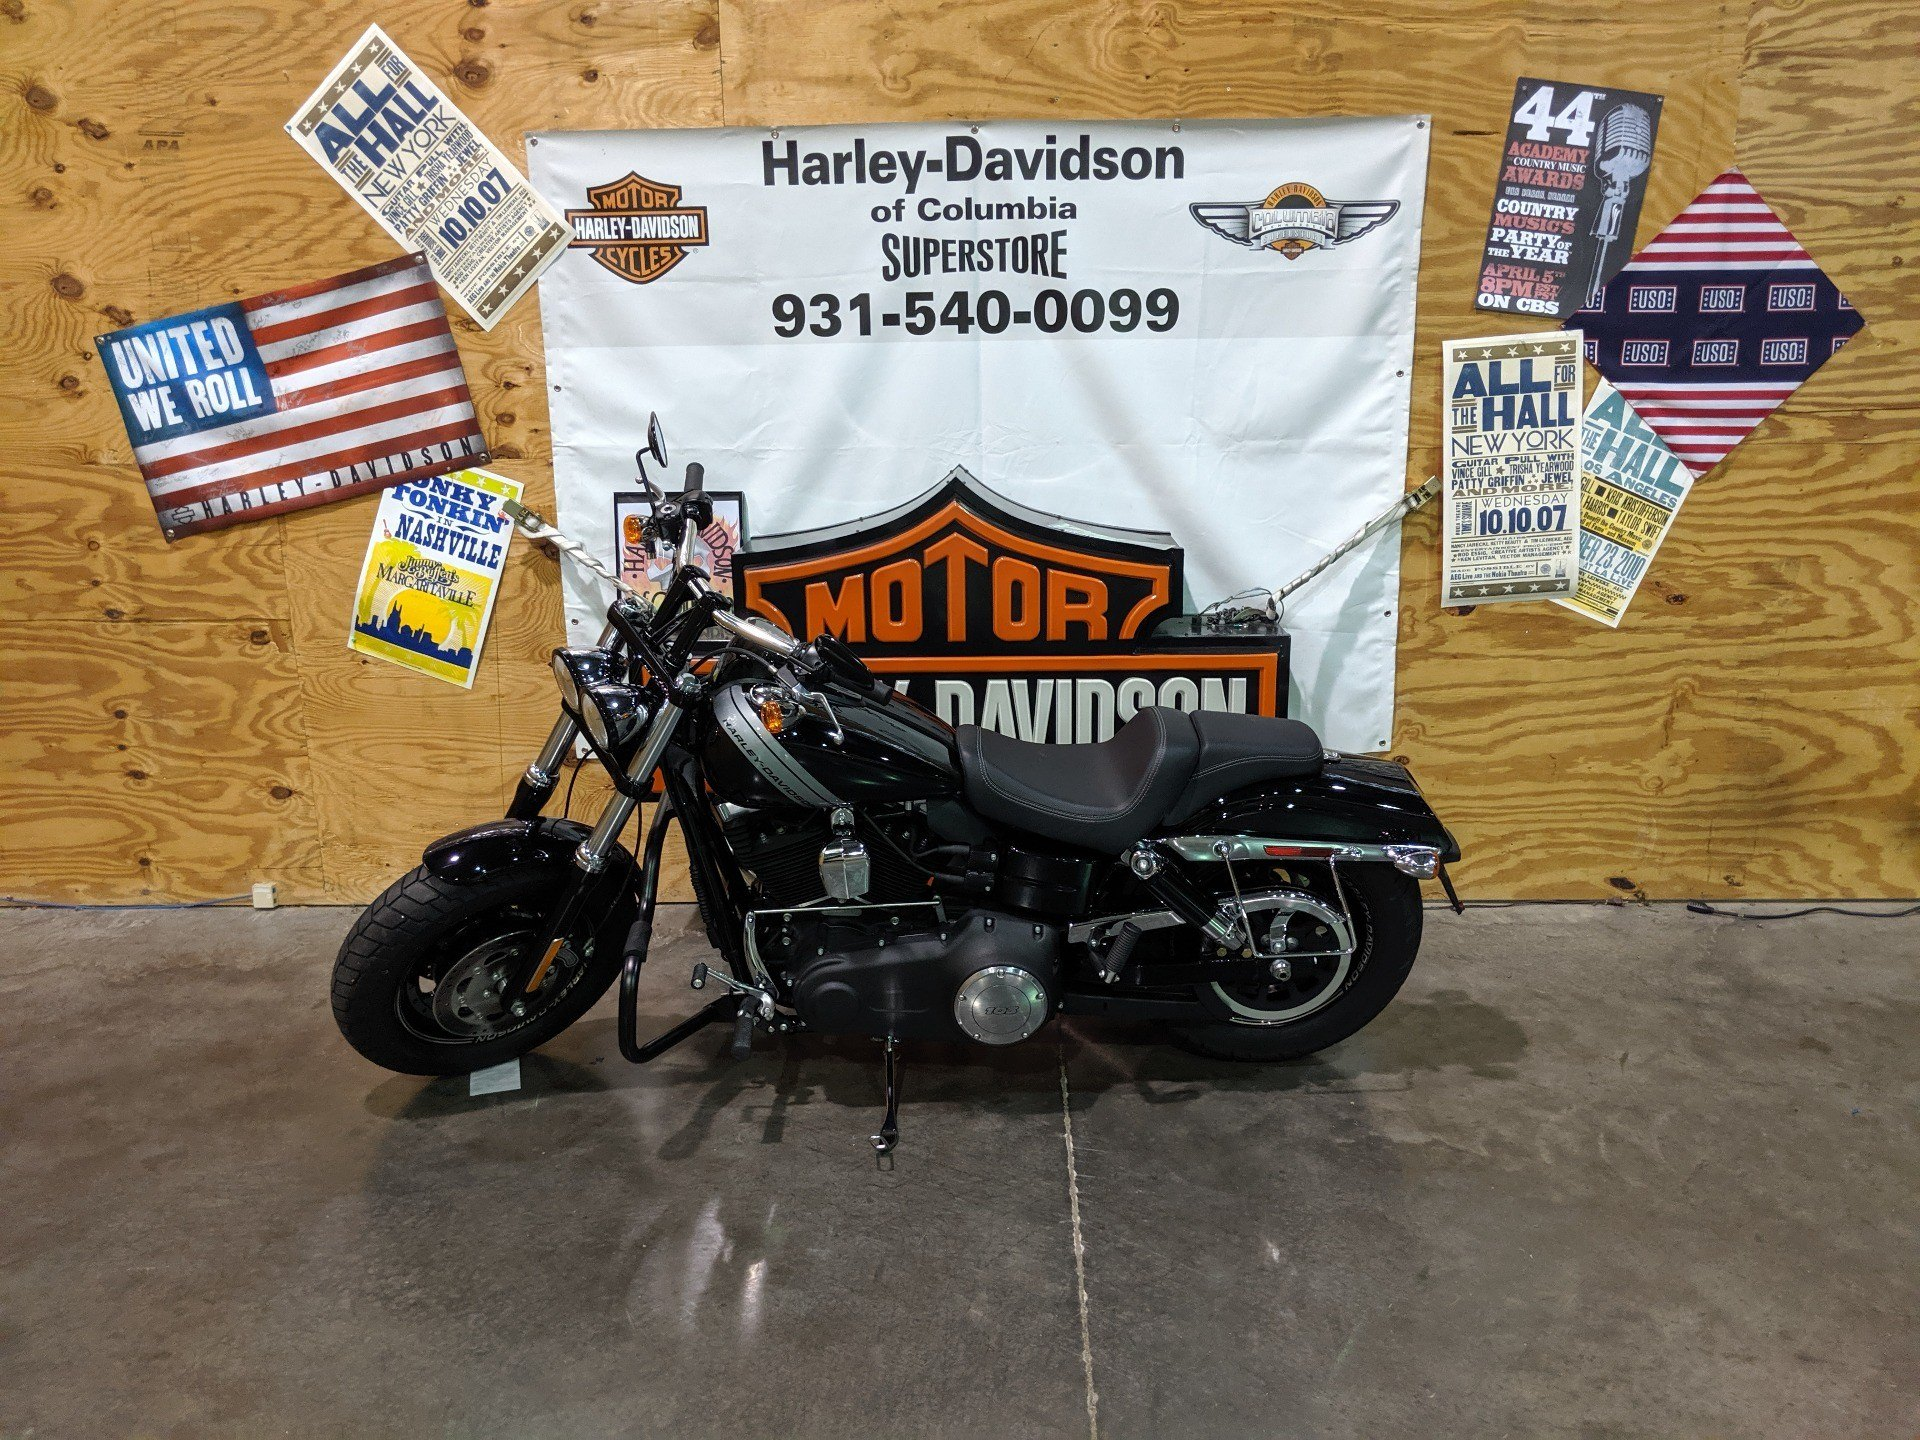 2017 Harley-Davidson FAT BOB in Columbia, Tennessee - Photo 5